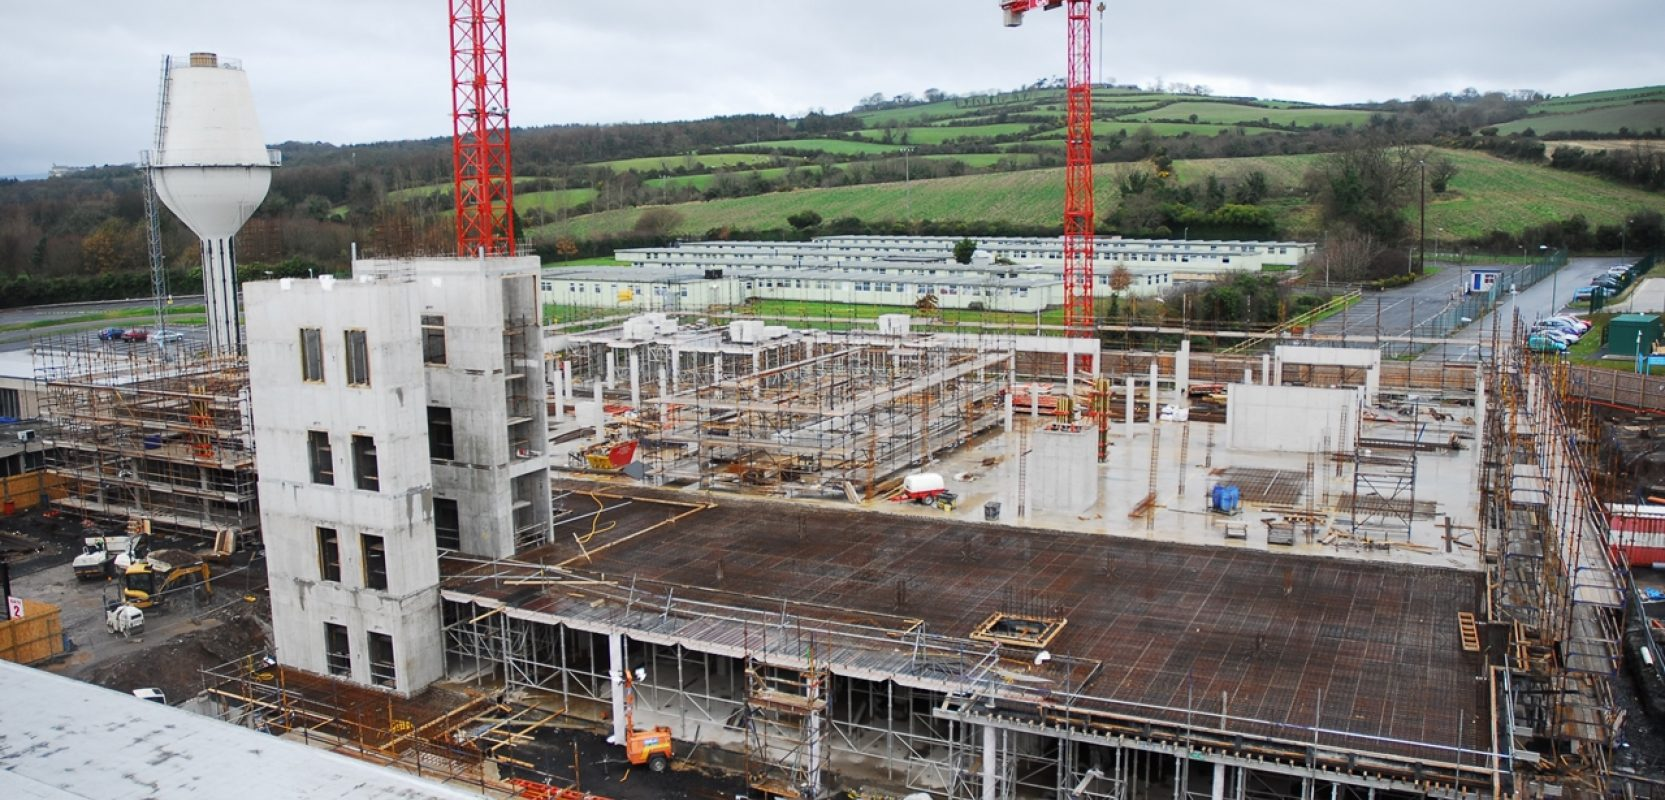 Images of The Ulster Hospital project